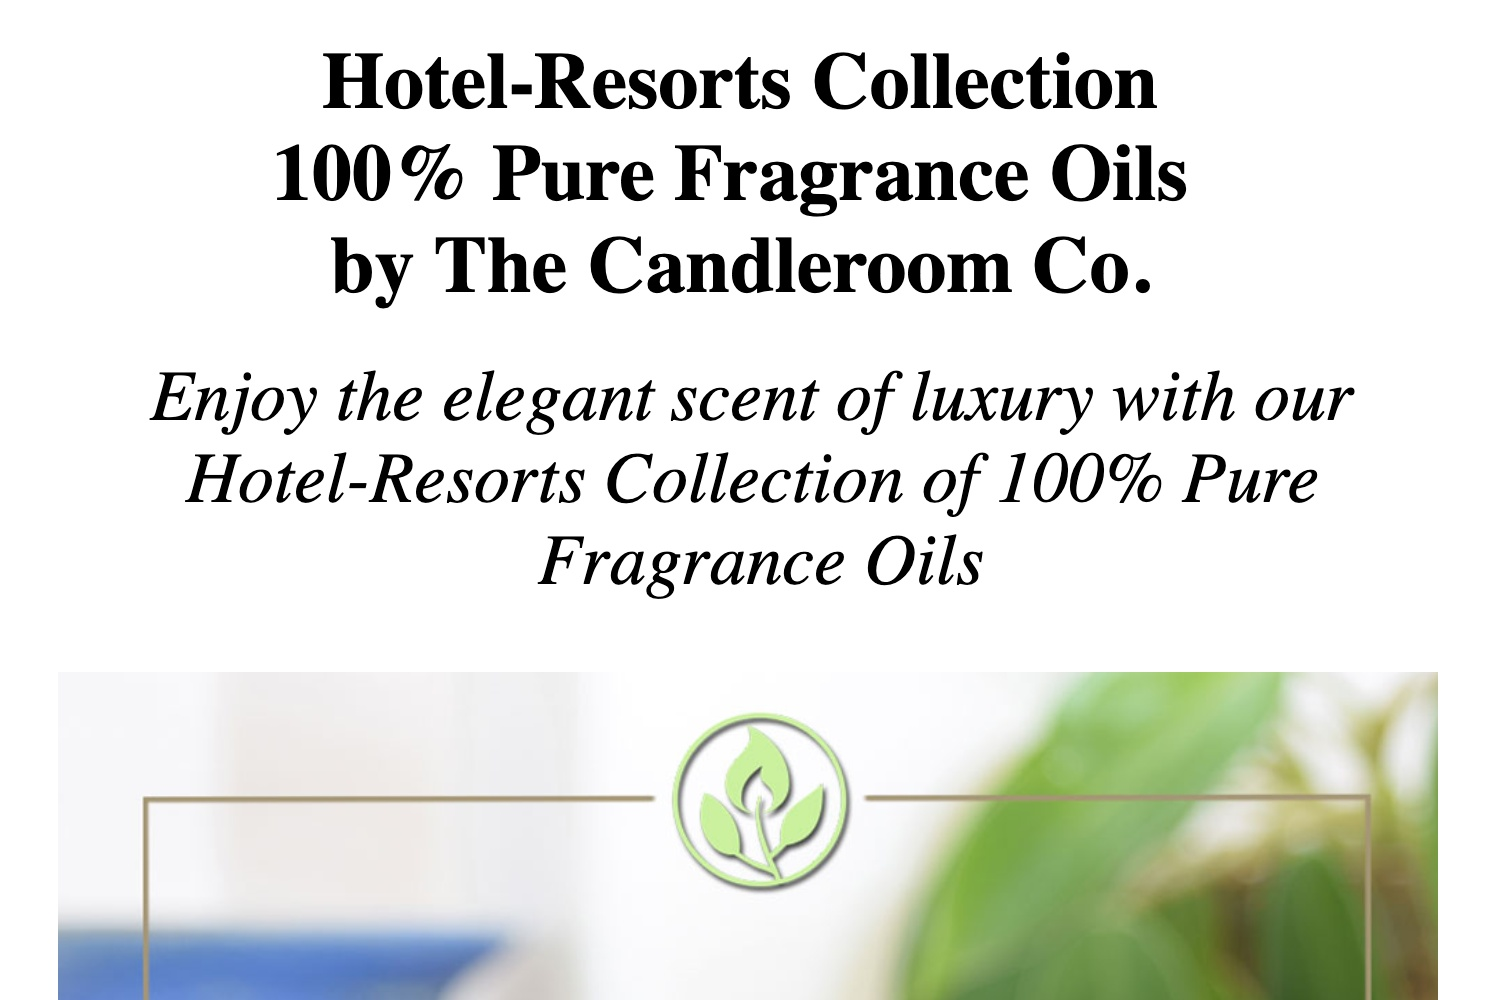 Hotel-Resorts Series - 100% Pure Fragrance Oil Collection 10mL by The  Candleroom Co